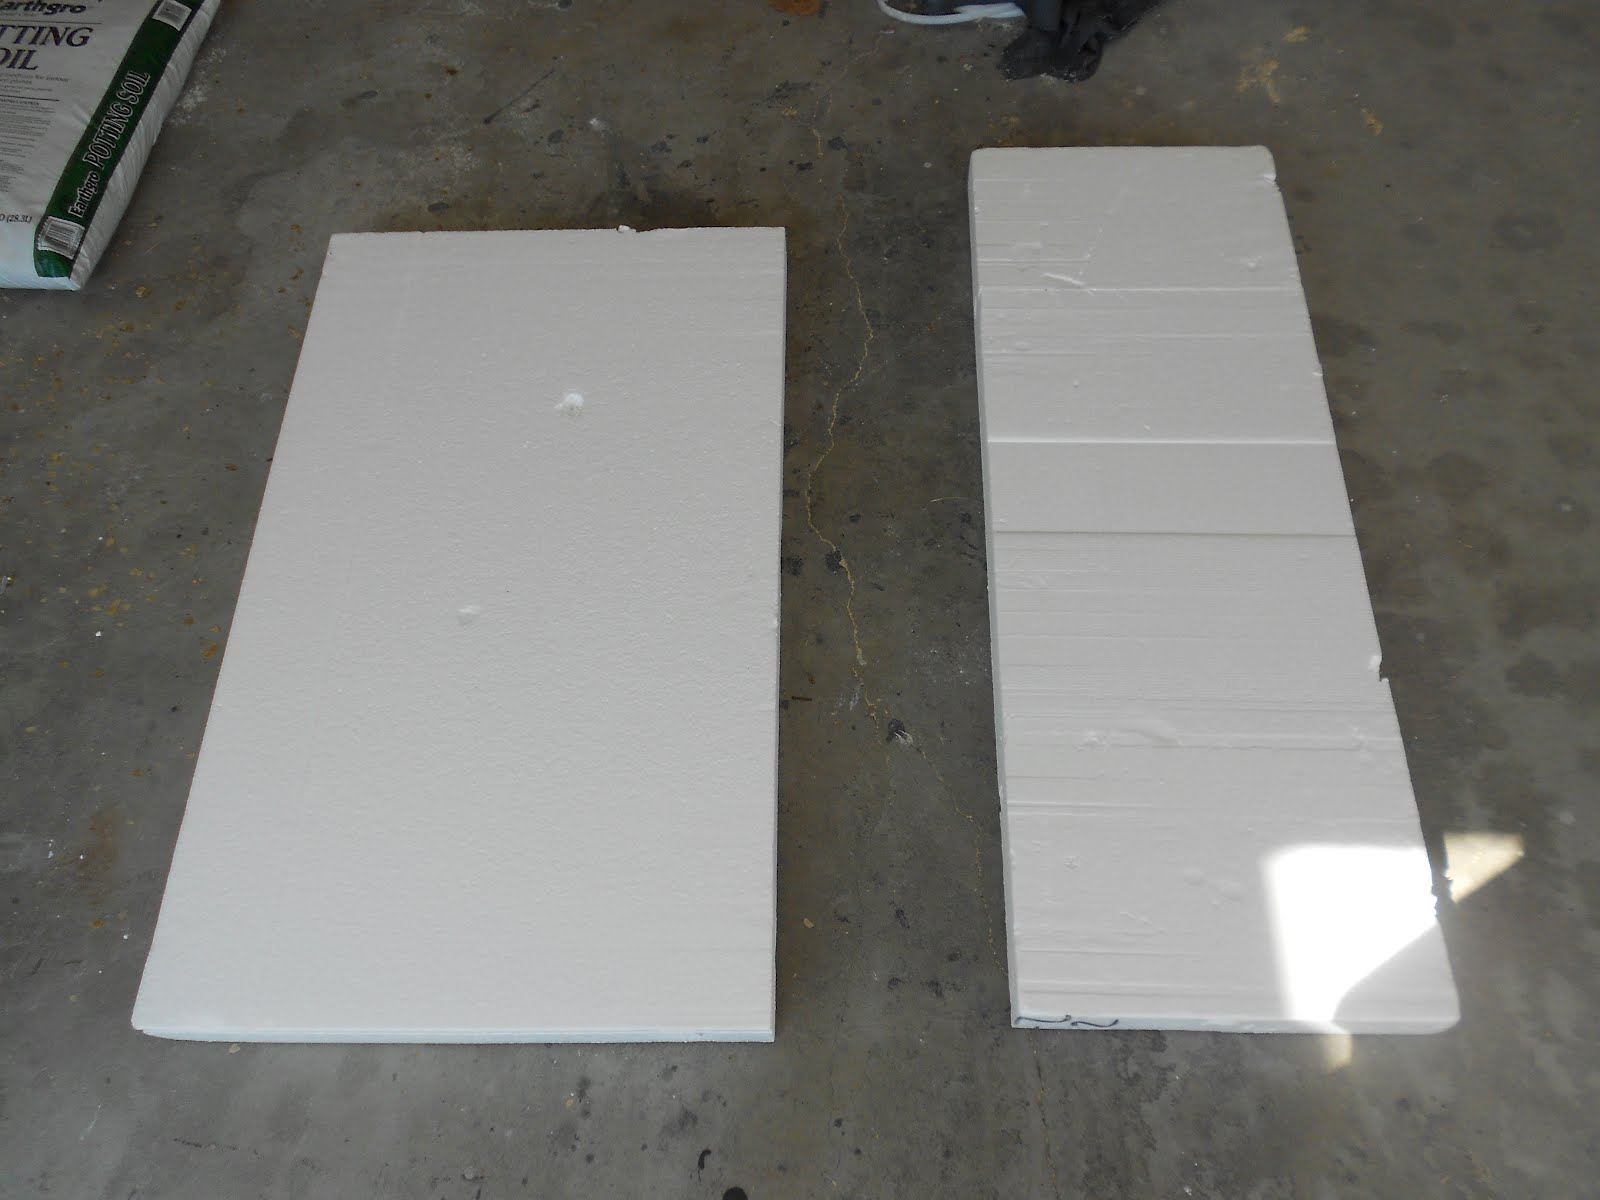 4x8 Styrofoam Panels : Styrofoam sheets home depot bing images